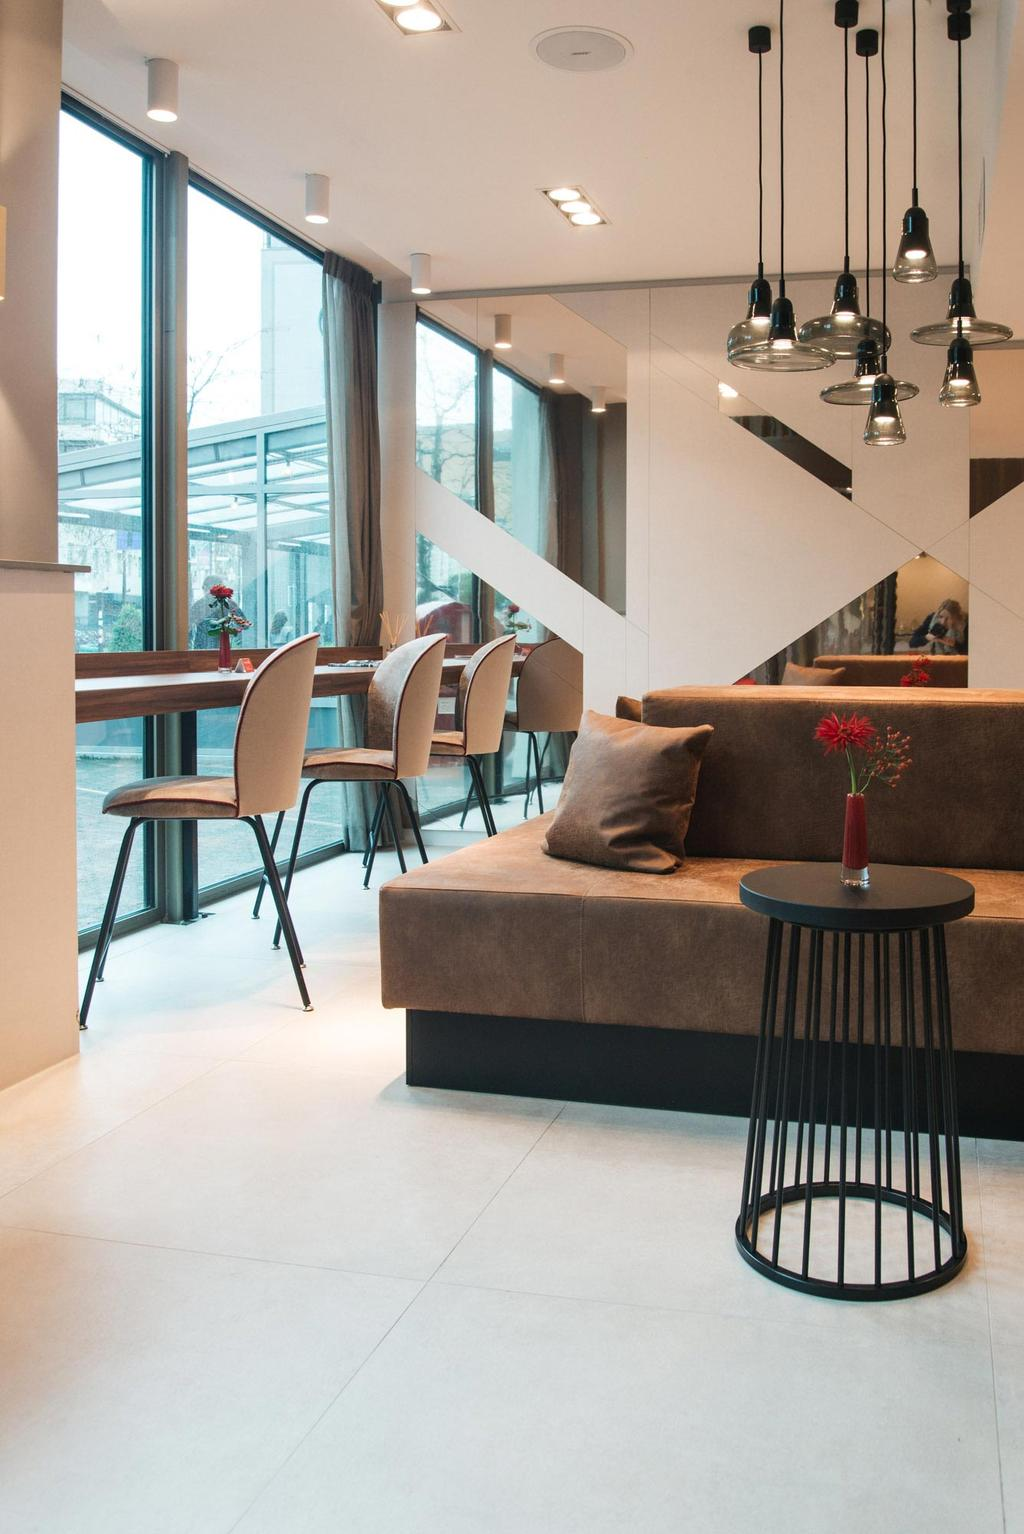 Hotel NH Eindhoven remade with love